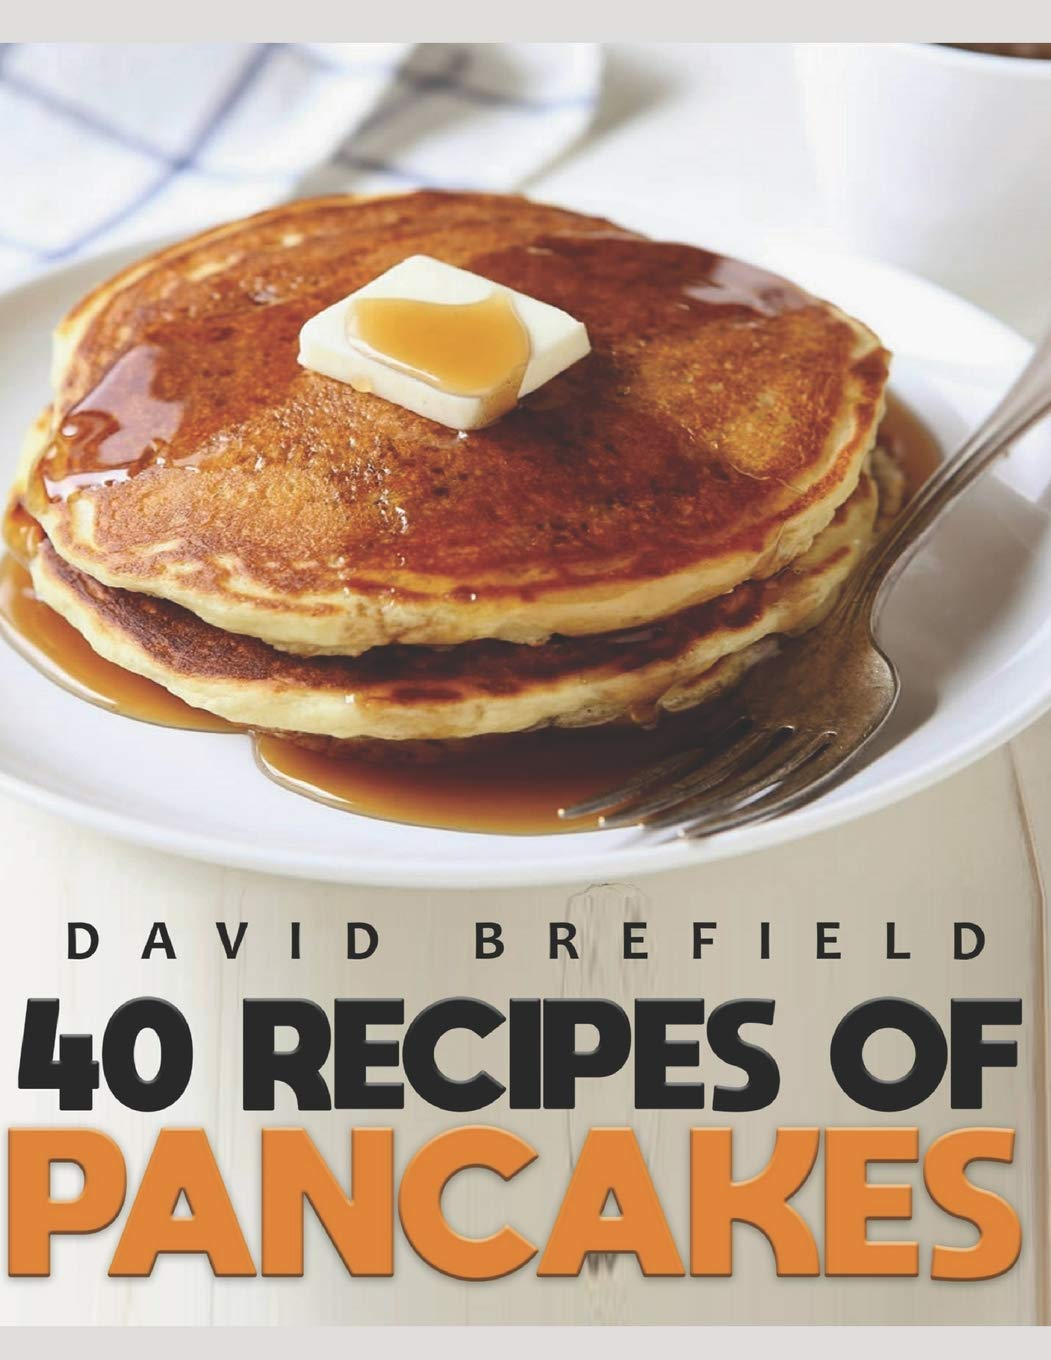 Amazon.com: 40 recipes of pancakes: The most delicious ...